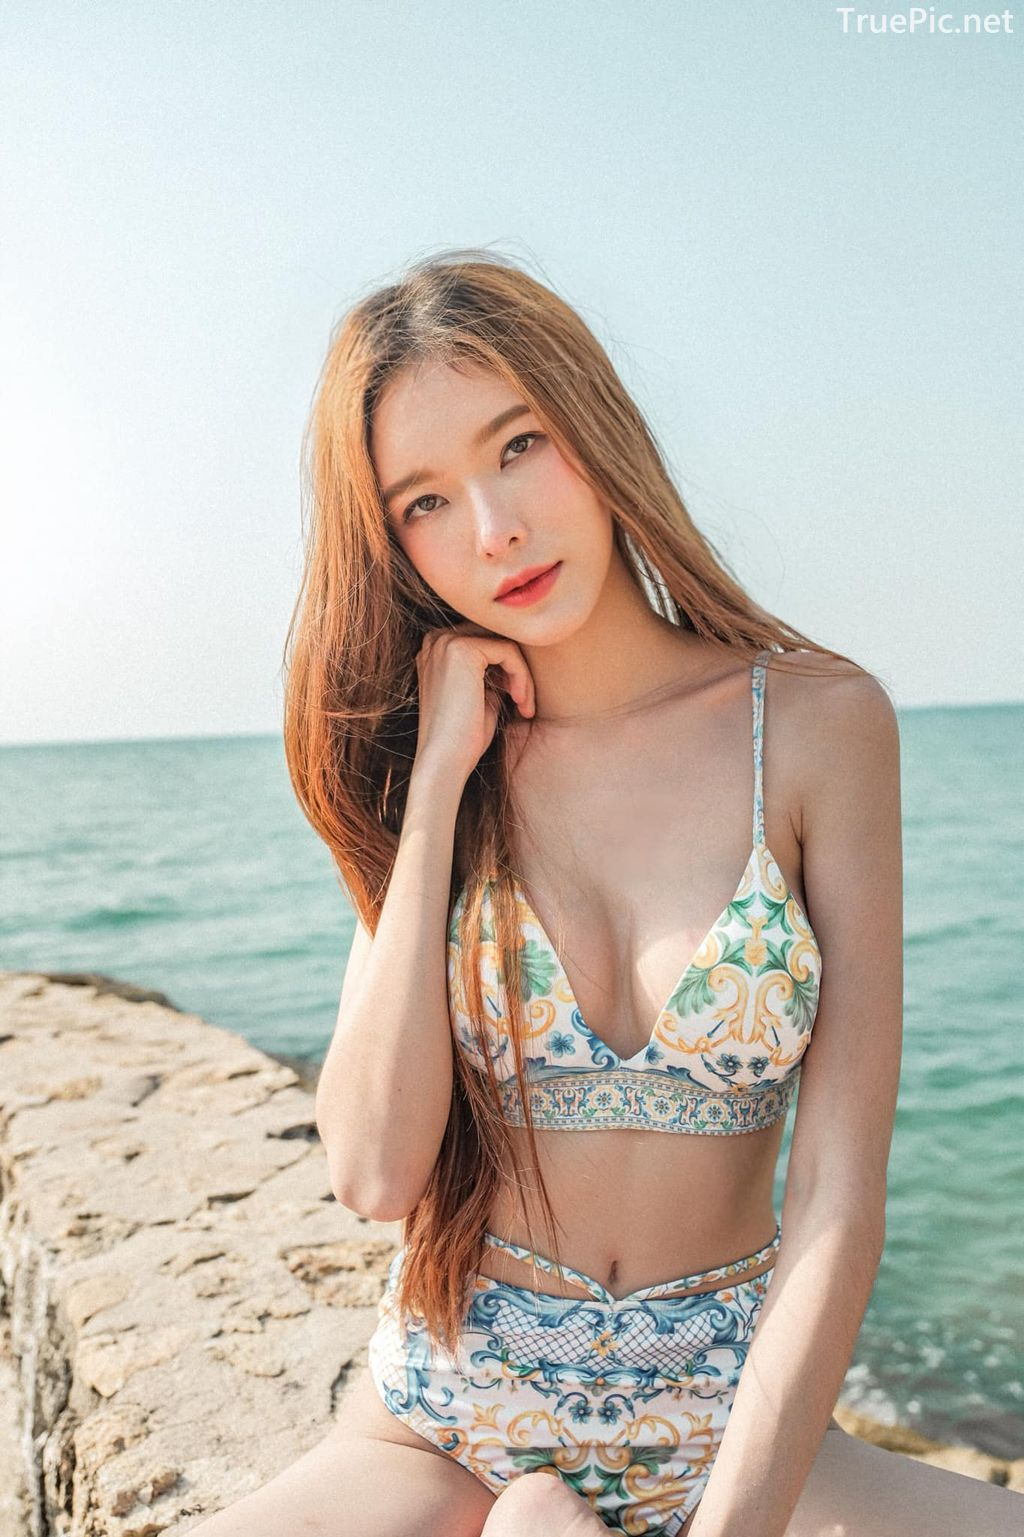 Image-Thailand-Sexy-Girl-Pierreploy-Intira-Beauty-and-The-Beach-TruePic.net- Picture-9